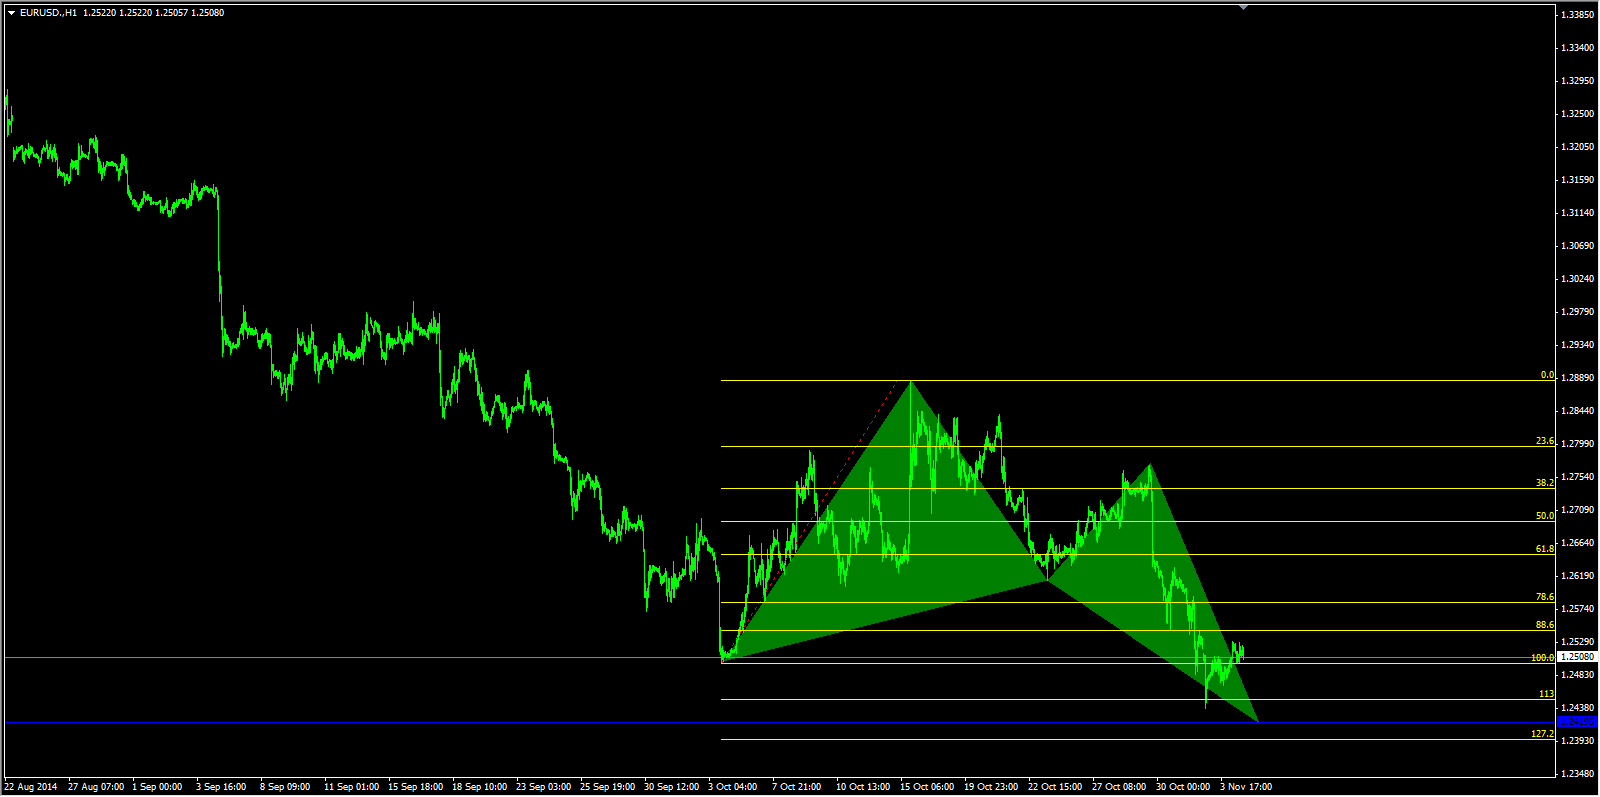 emerging butterfly bullish pattern EURUSD